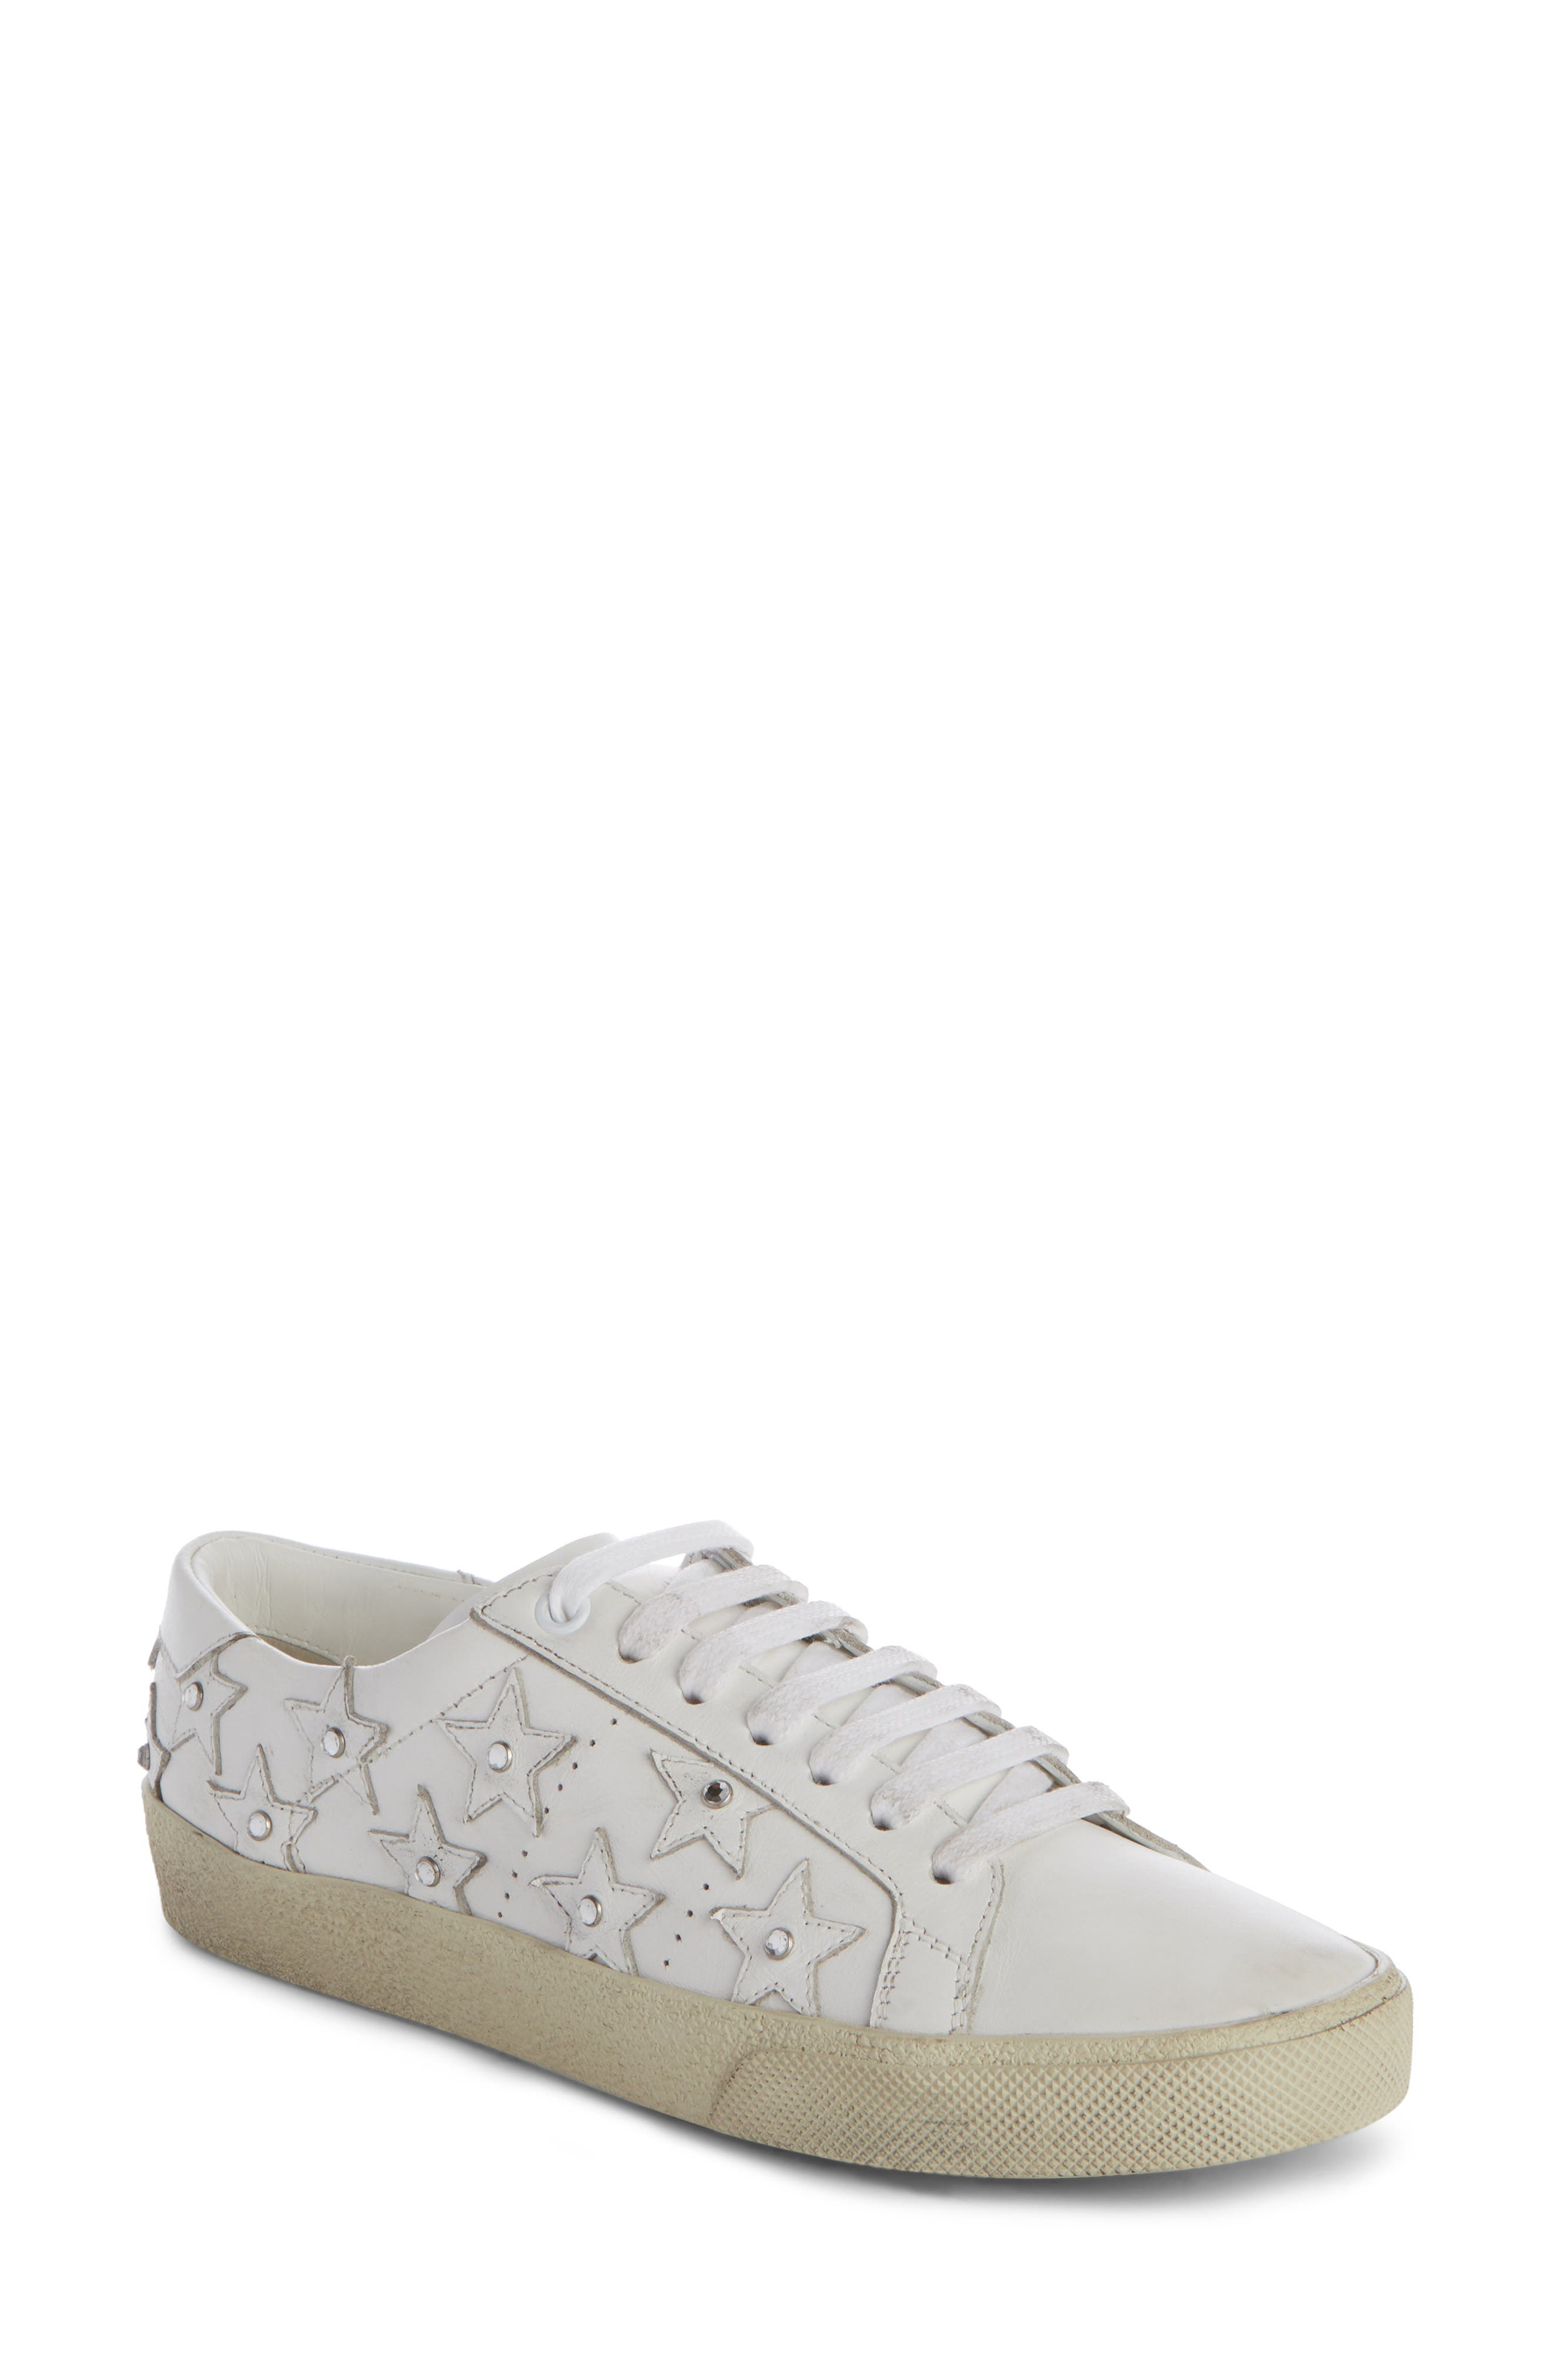 Court Classic Embellished Star Sneaker,                             Main thumbnail 1, color,                             120